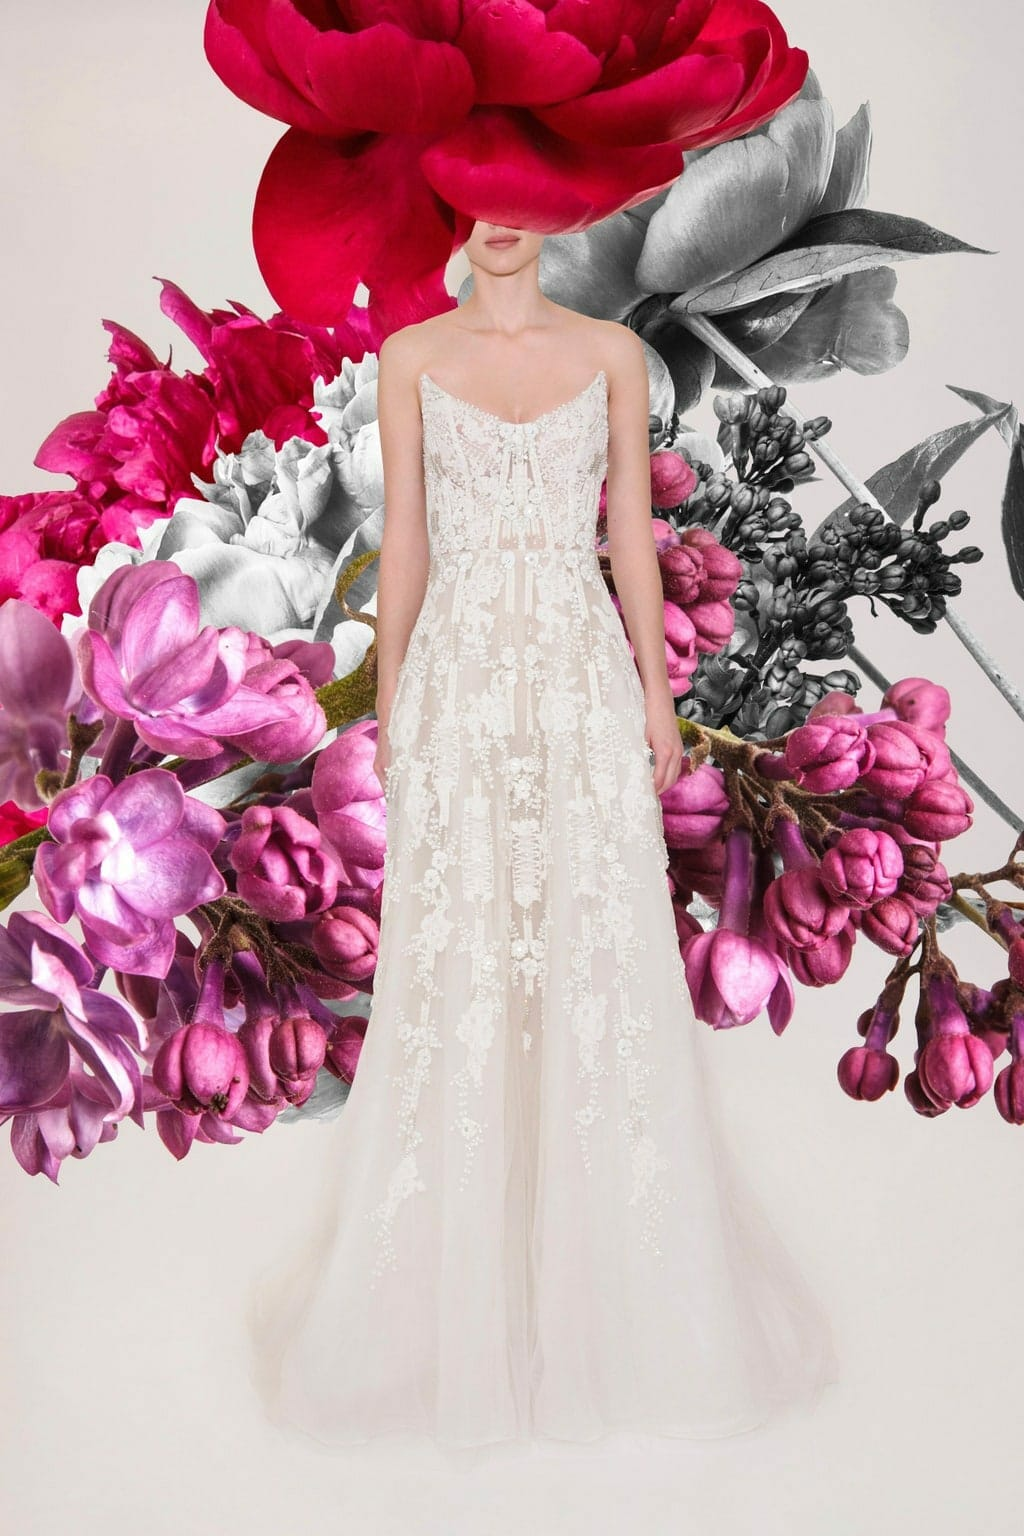 Reem Acra Bridal Spring Summer 2021 New York. RUNWAY MAGAZINE ® Collections. RUNWAY NOW / RUNWAY NEW